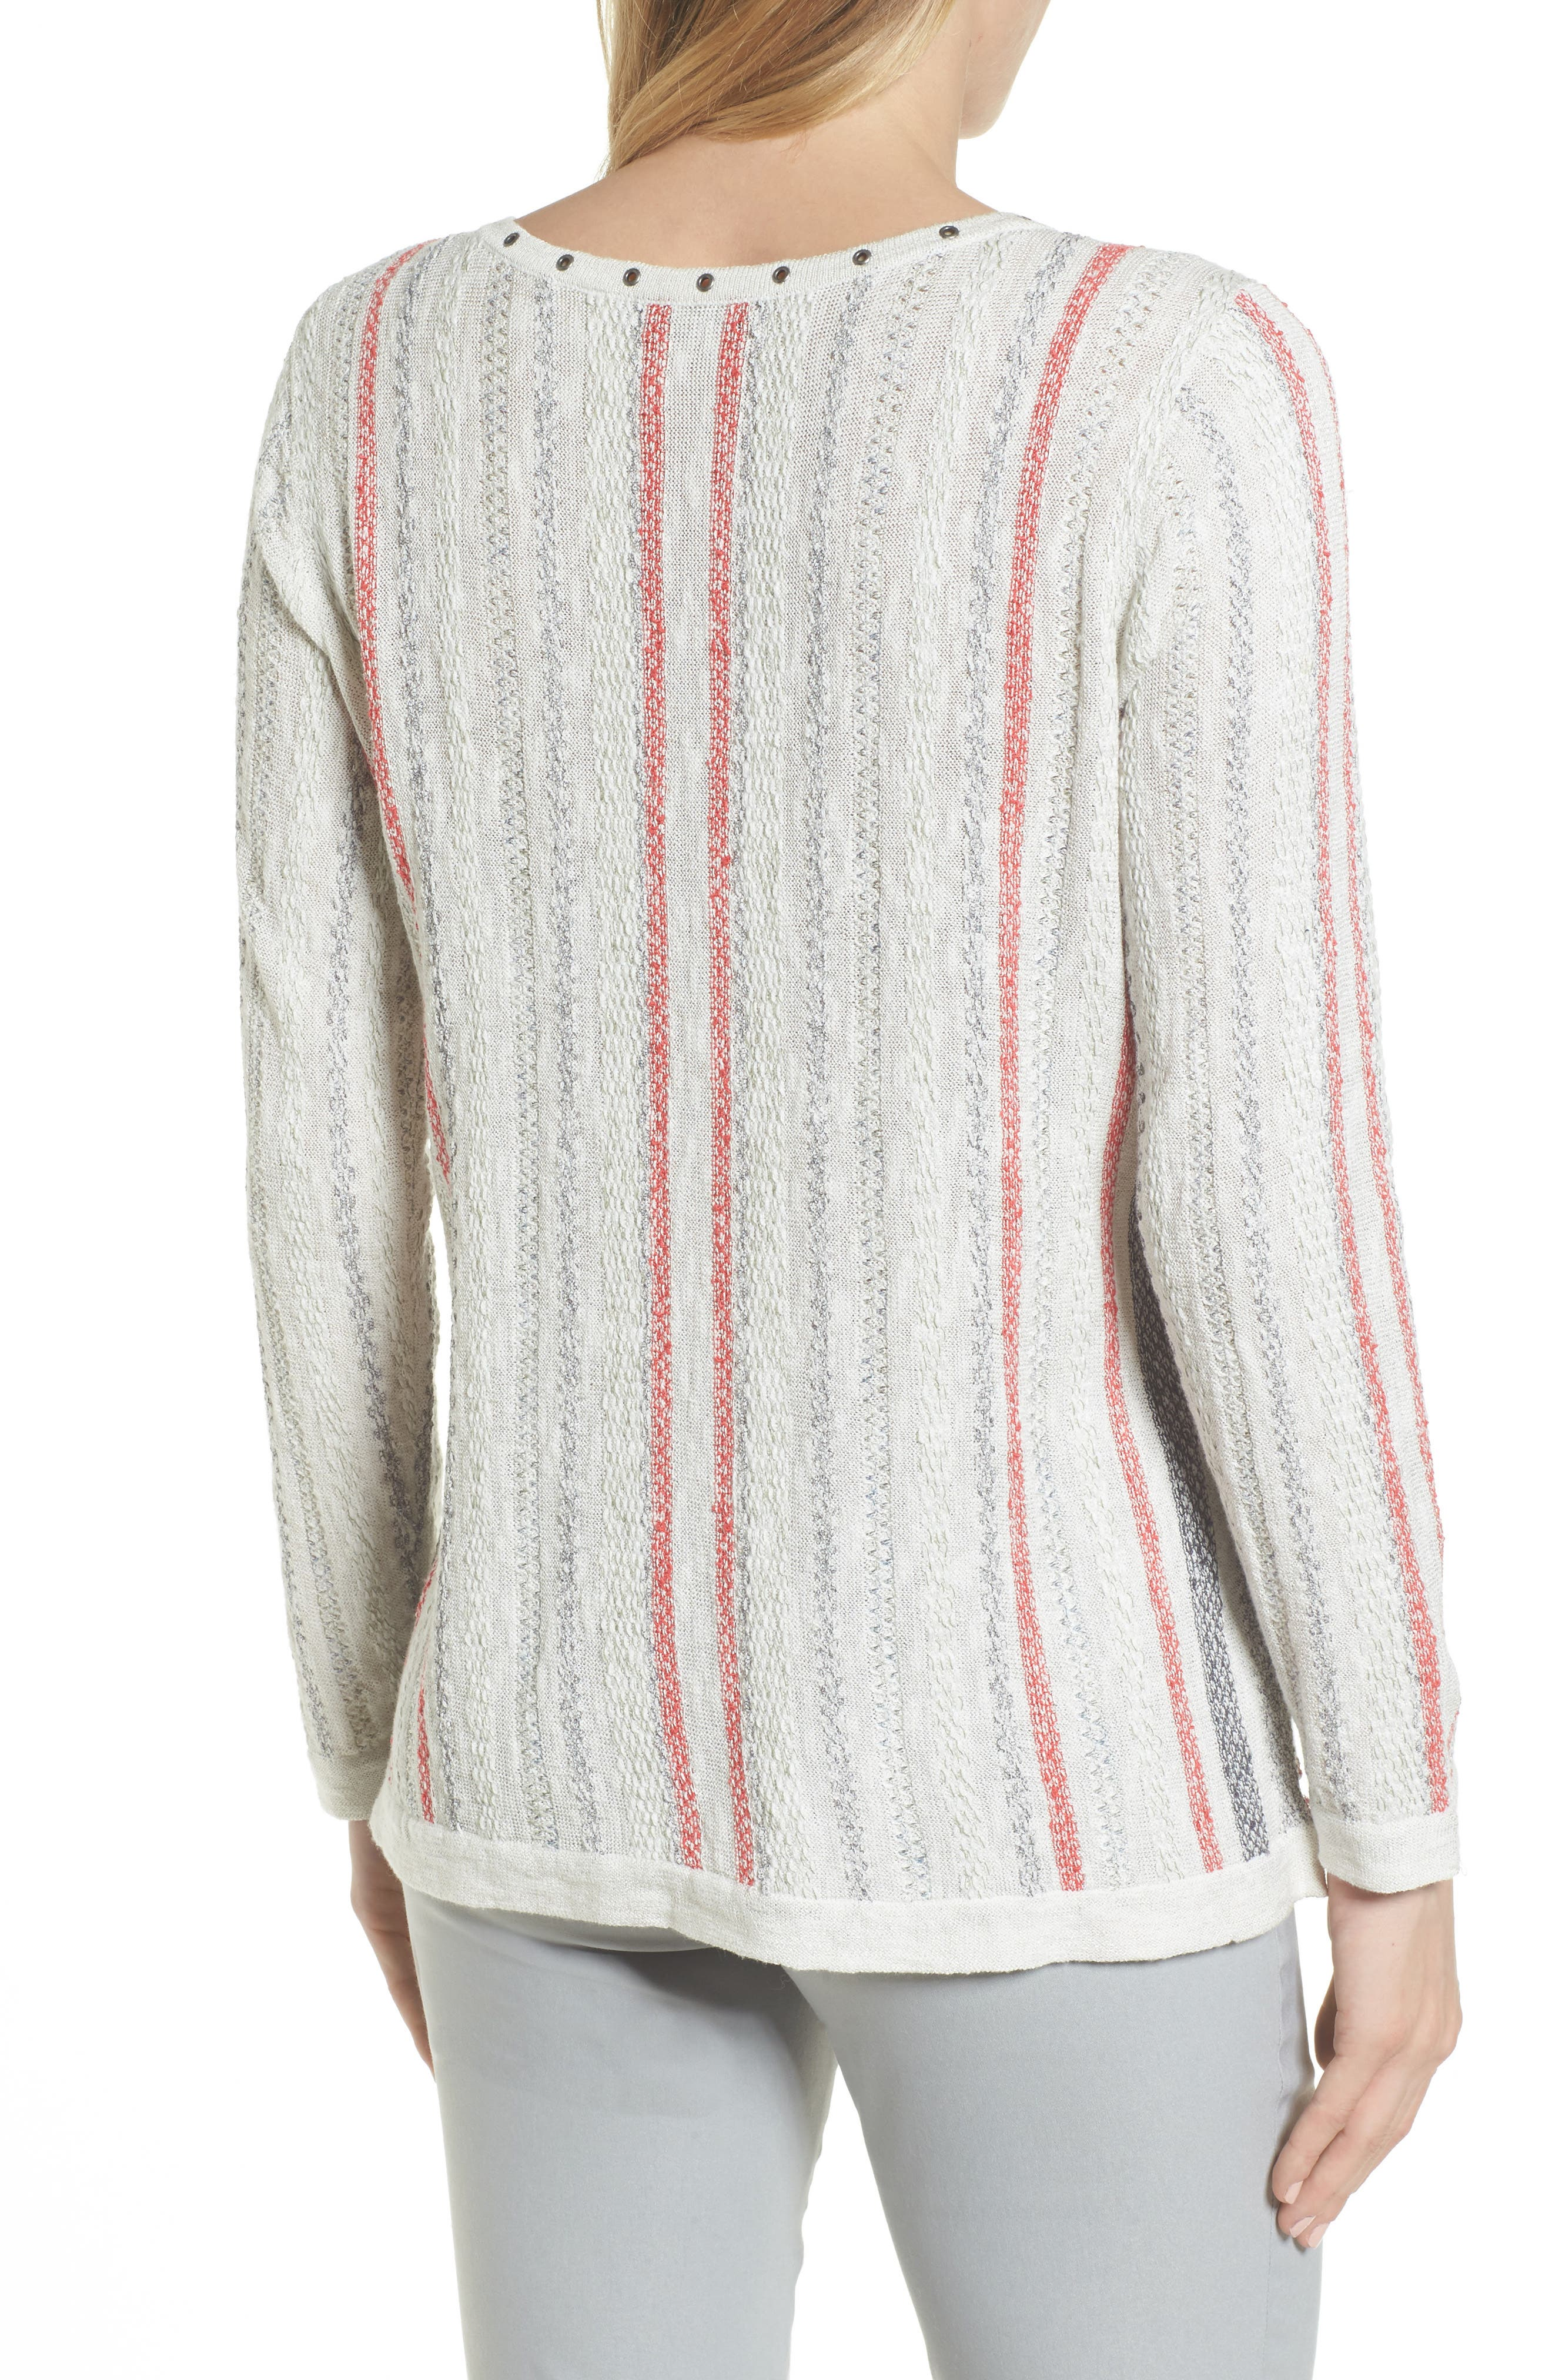 NIC + ZOE Cross Country Lace-Up Top,                             Alternate thumbnail 2, color,                             Multi